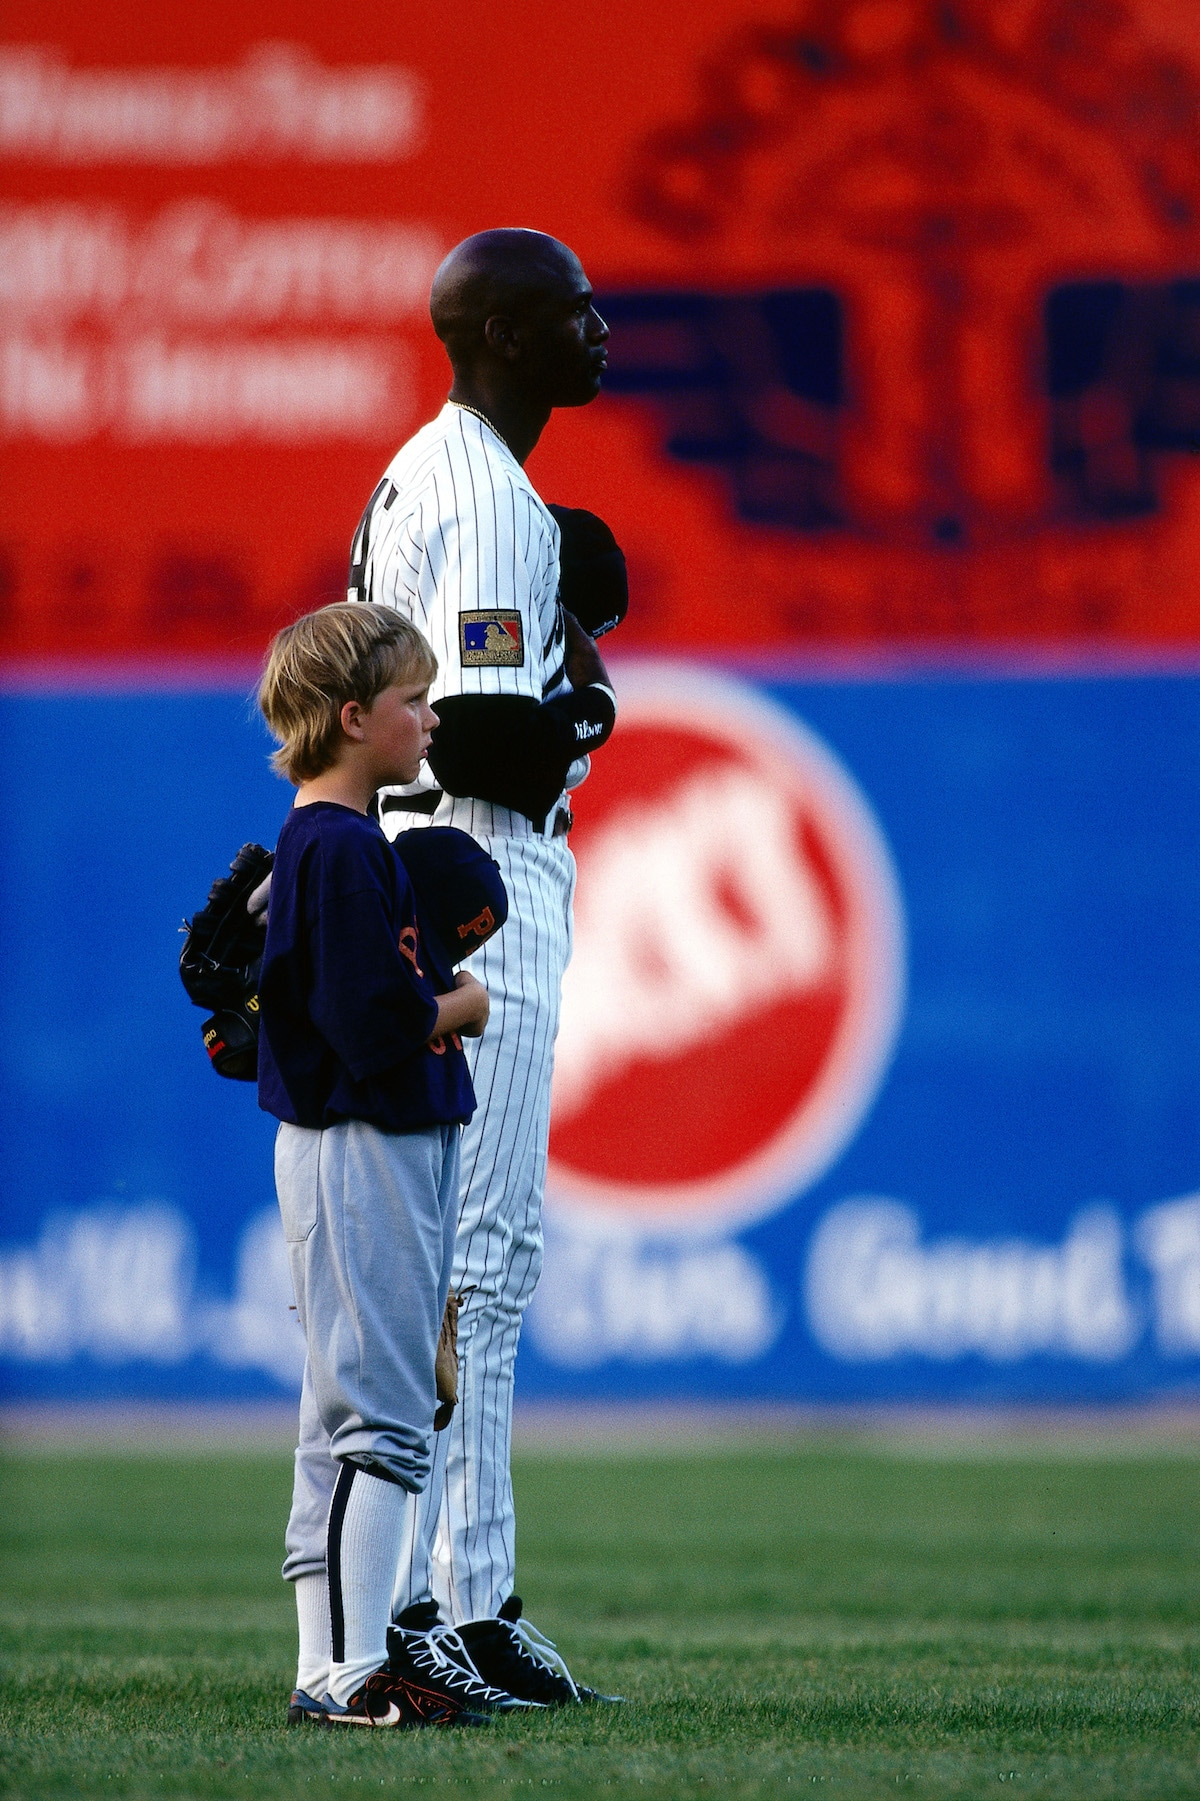 Michael Jordan, in minor league baseball attire, stands next to a child during the National Anthem.